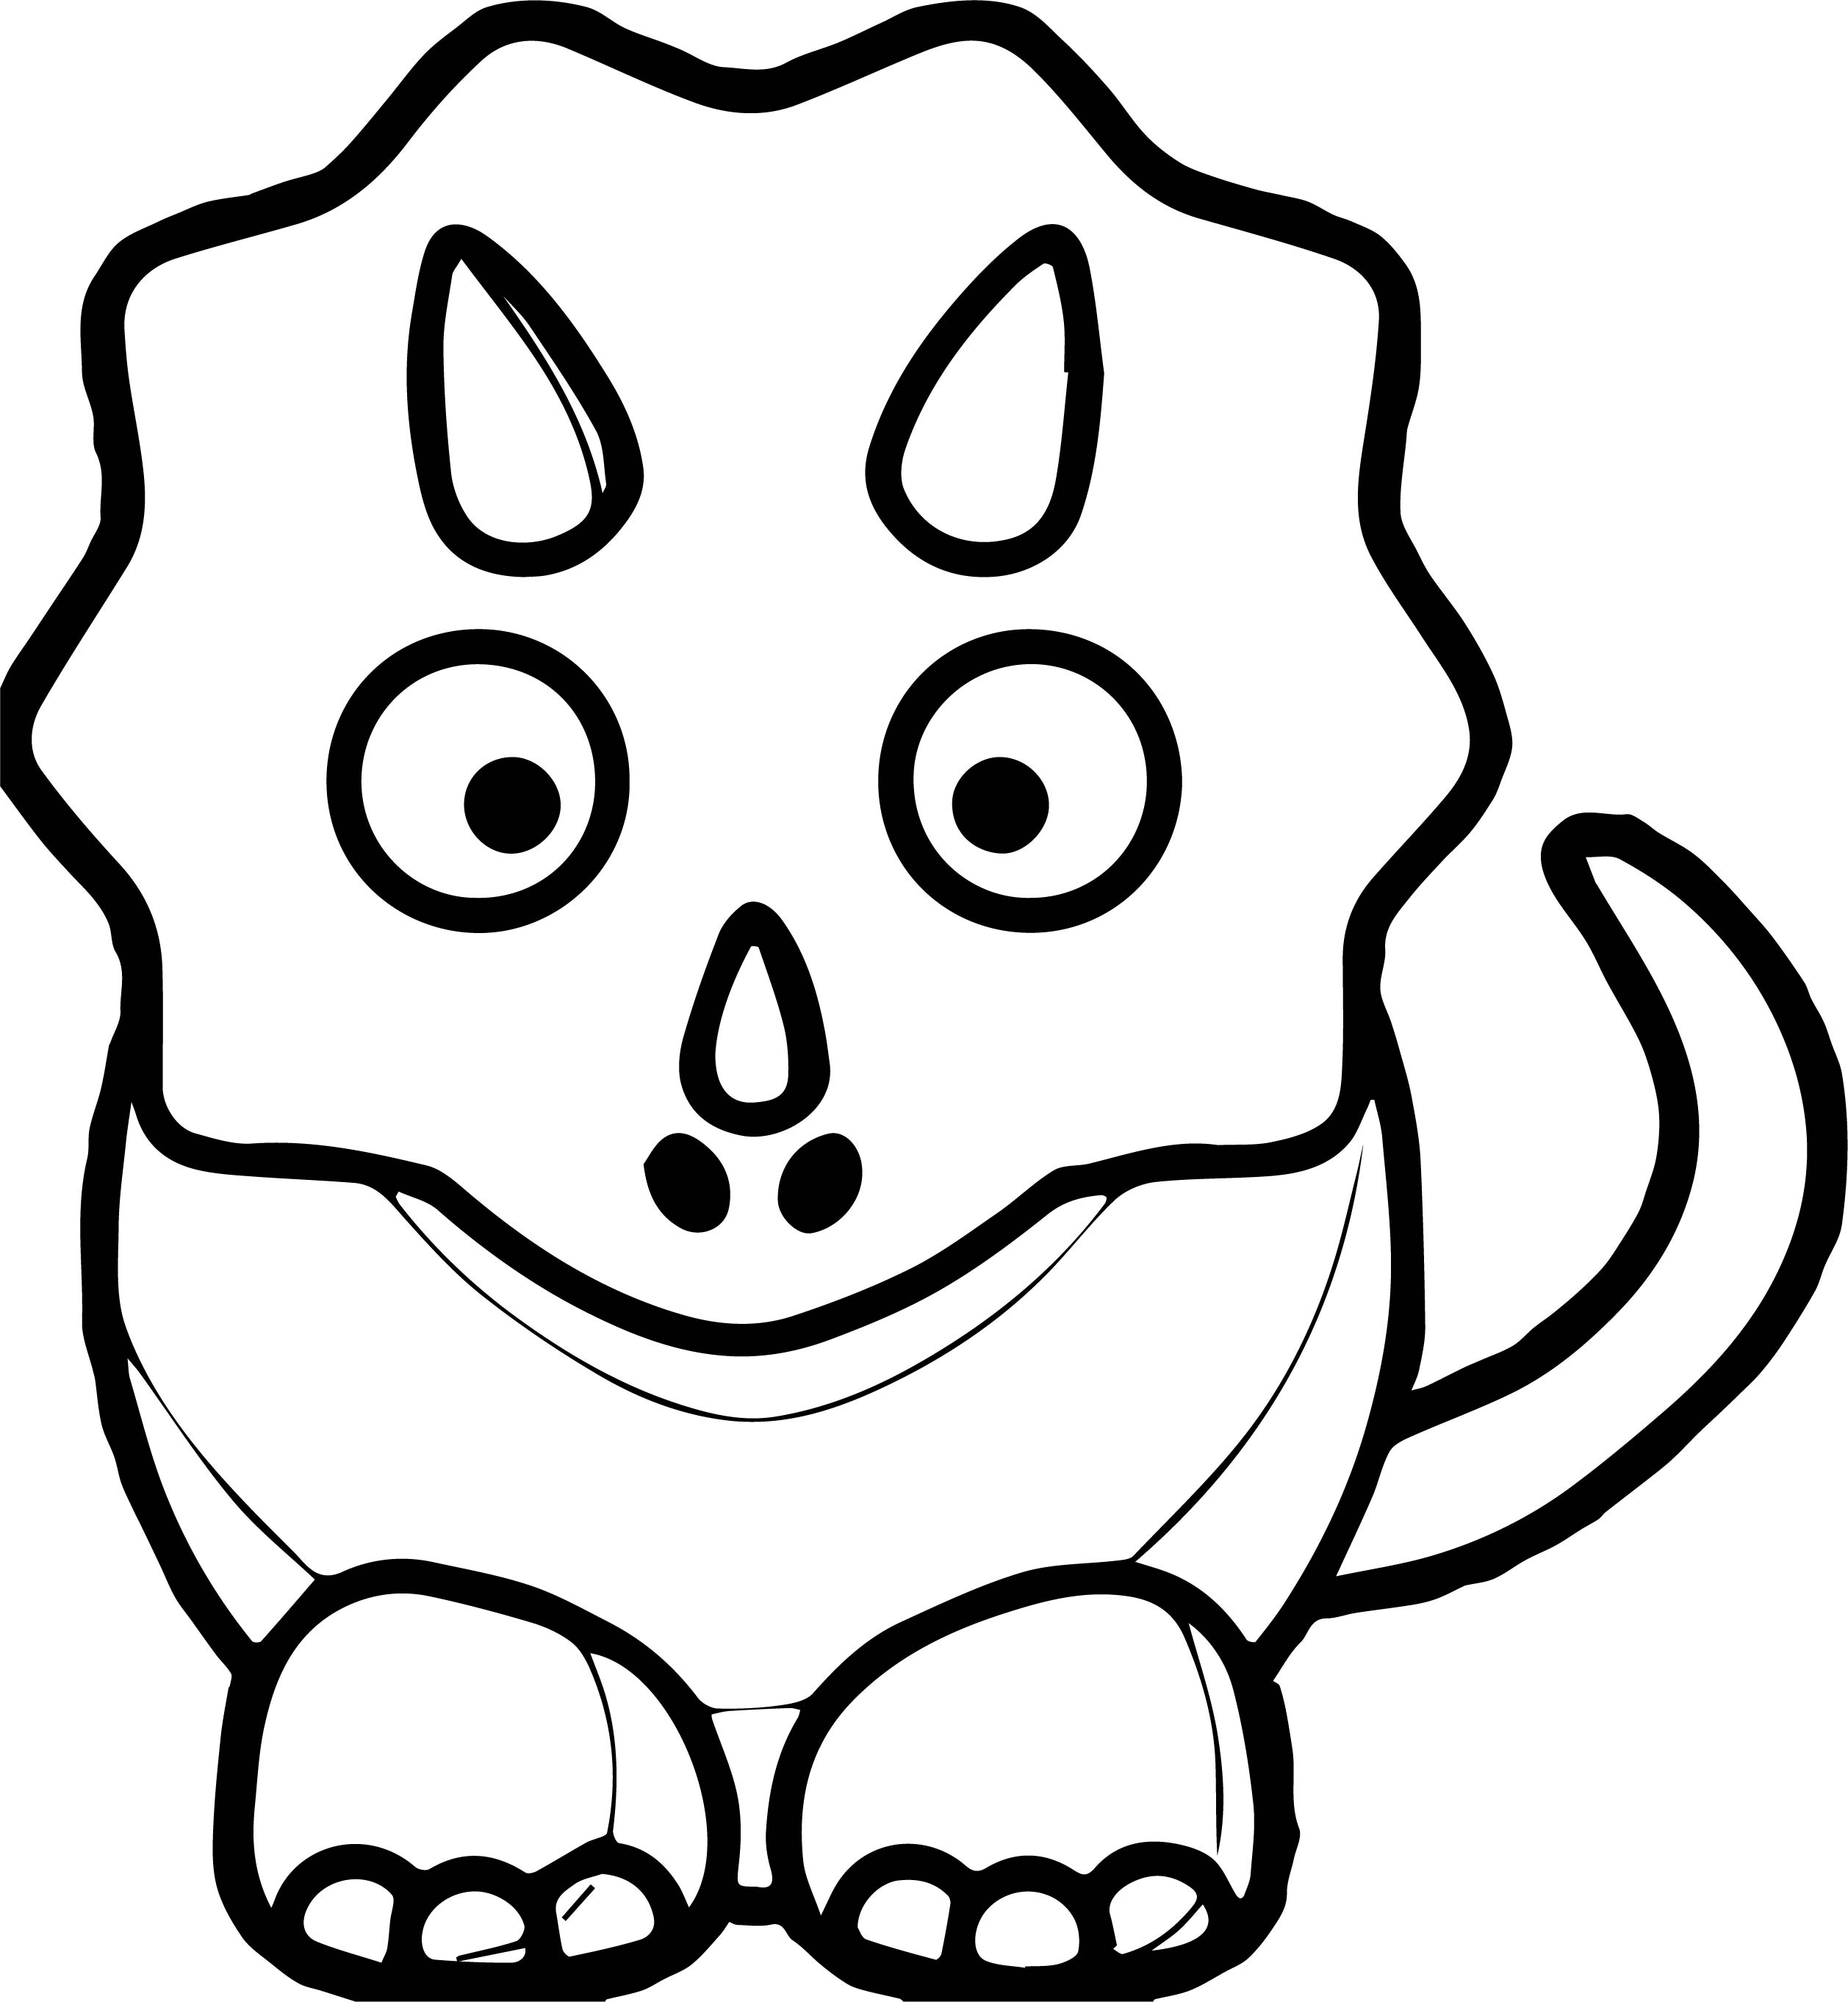 cute dinosaur black and white baby blue dinosaur coloring page - Cute Baby Dinosaur Coloring Pages